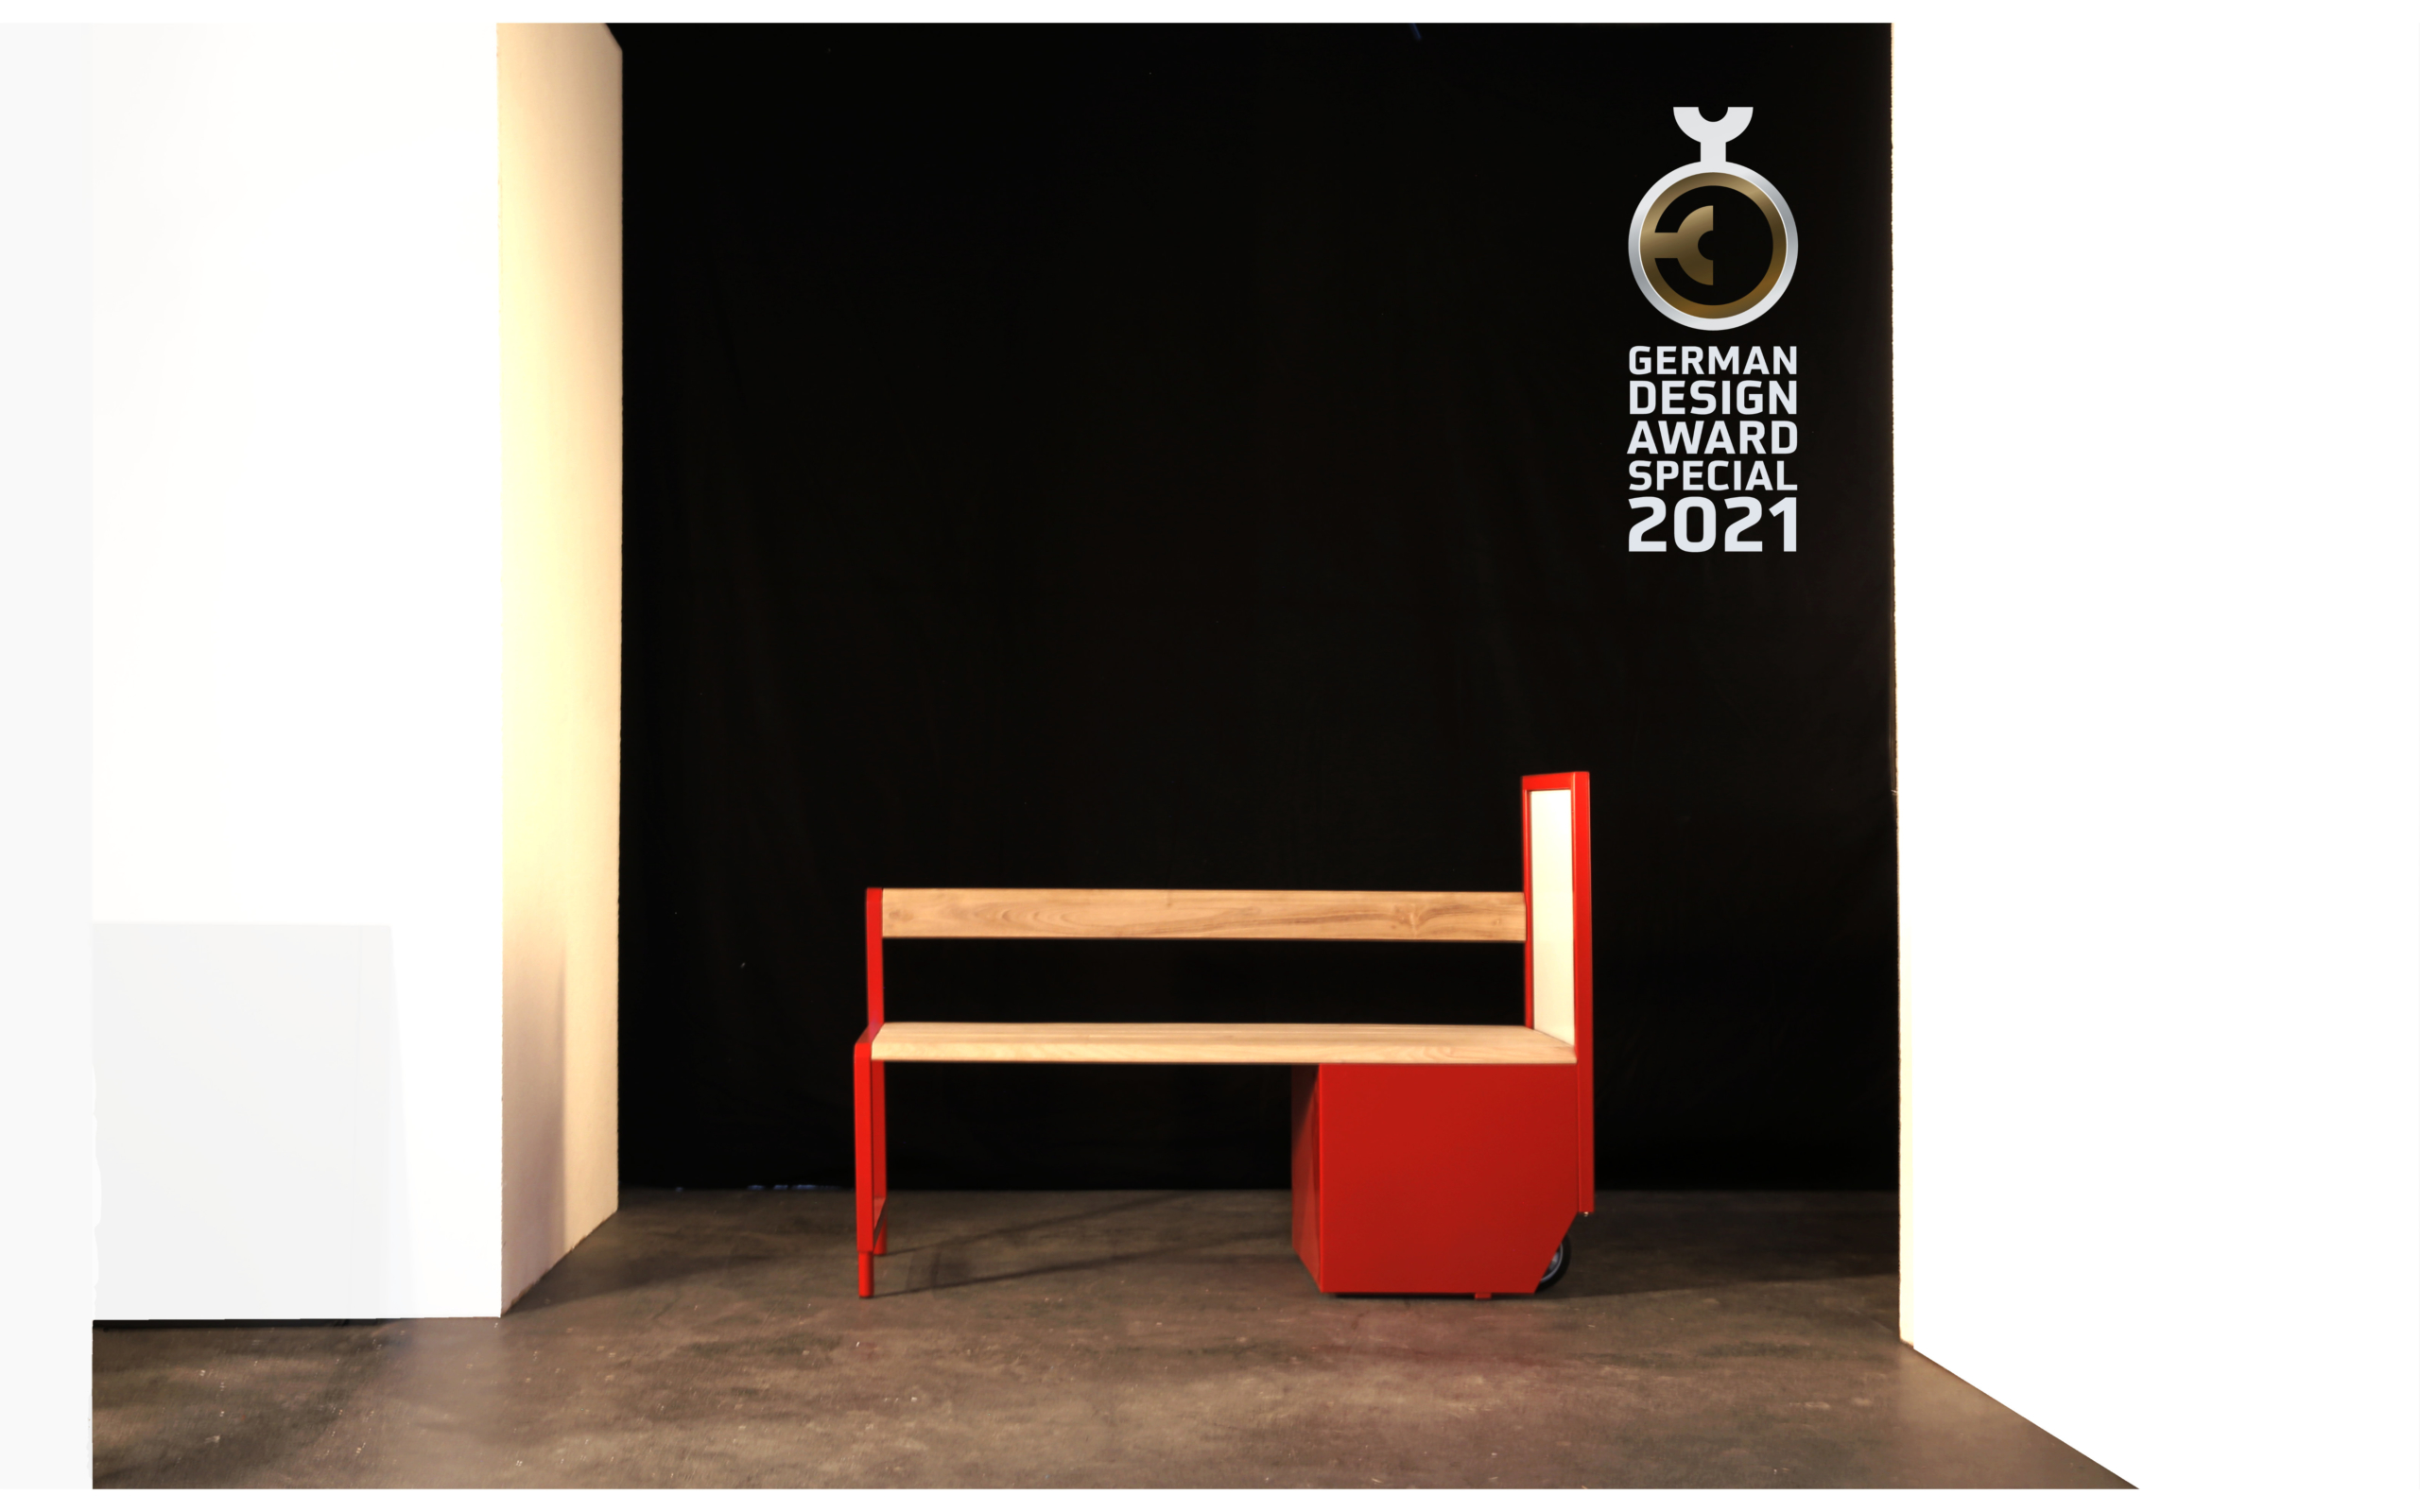 germandesignaward 2021